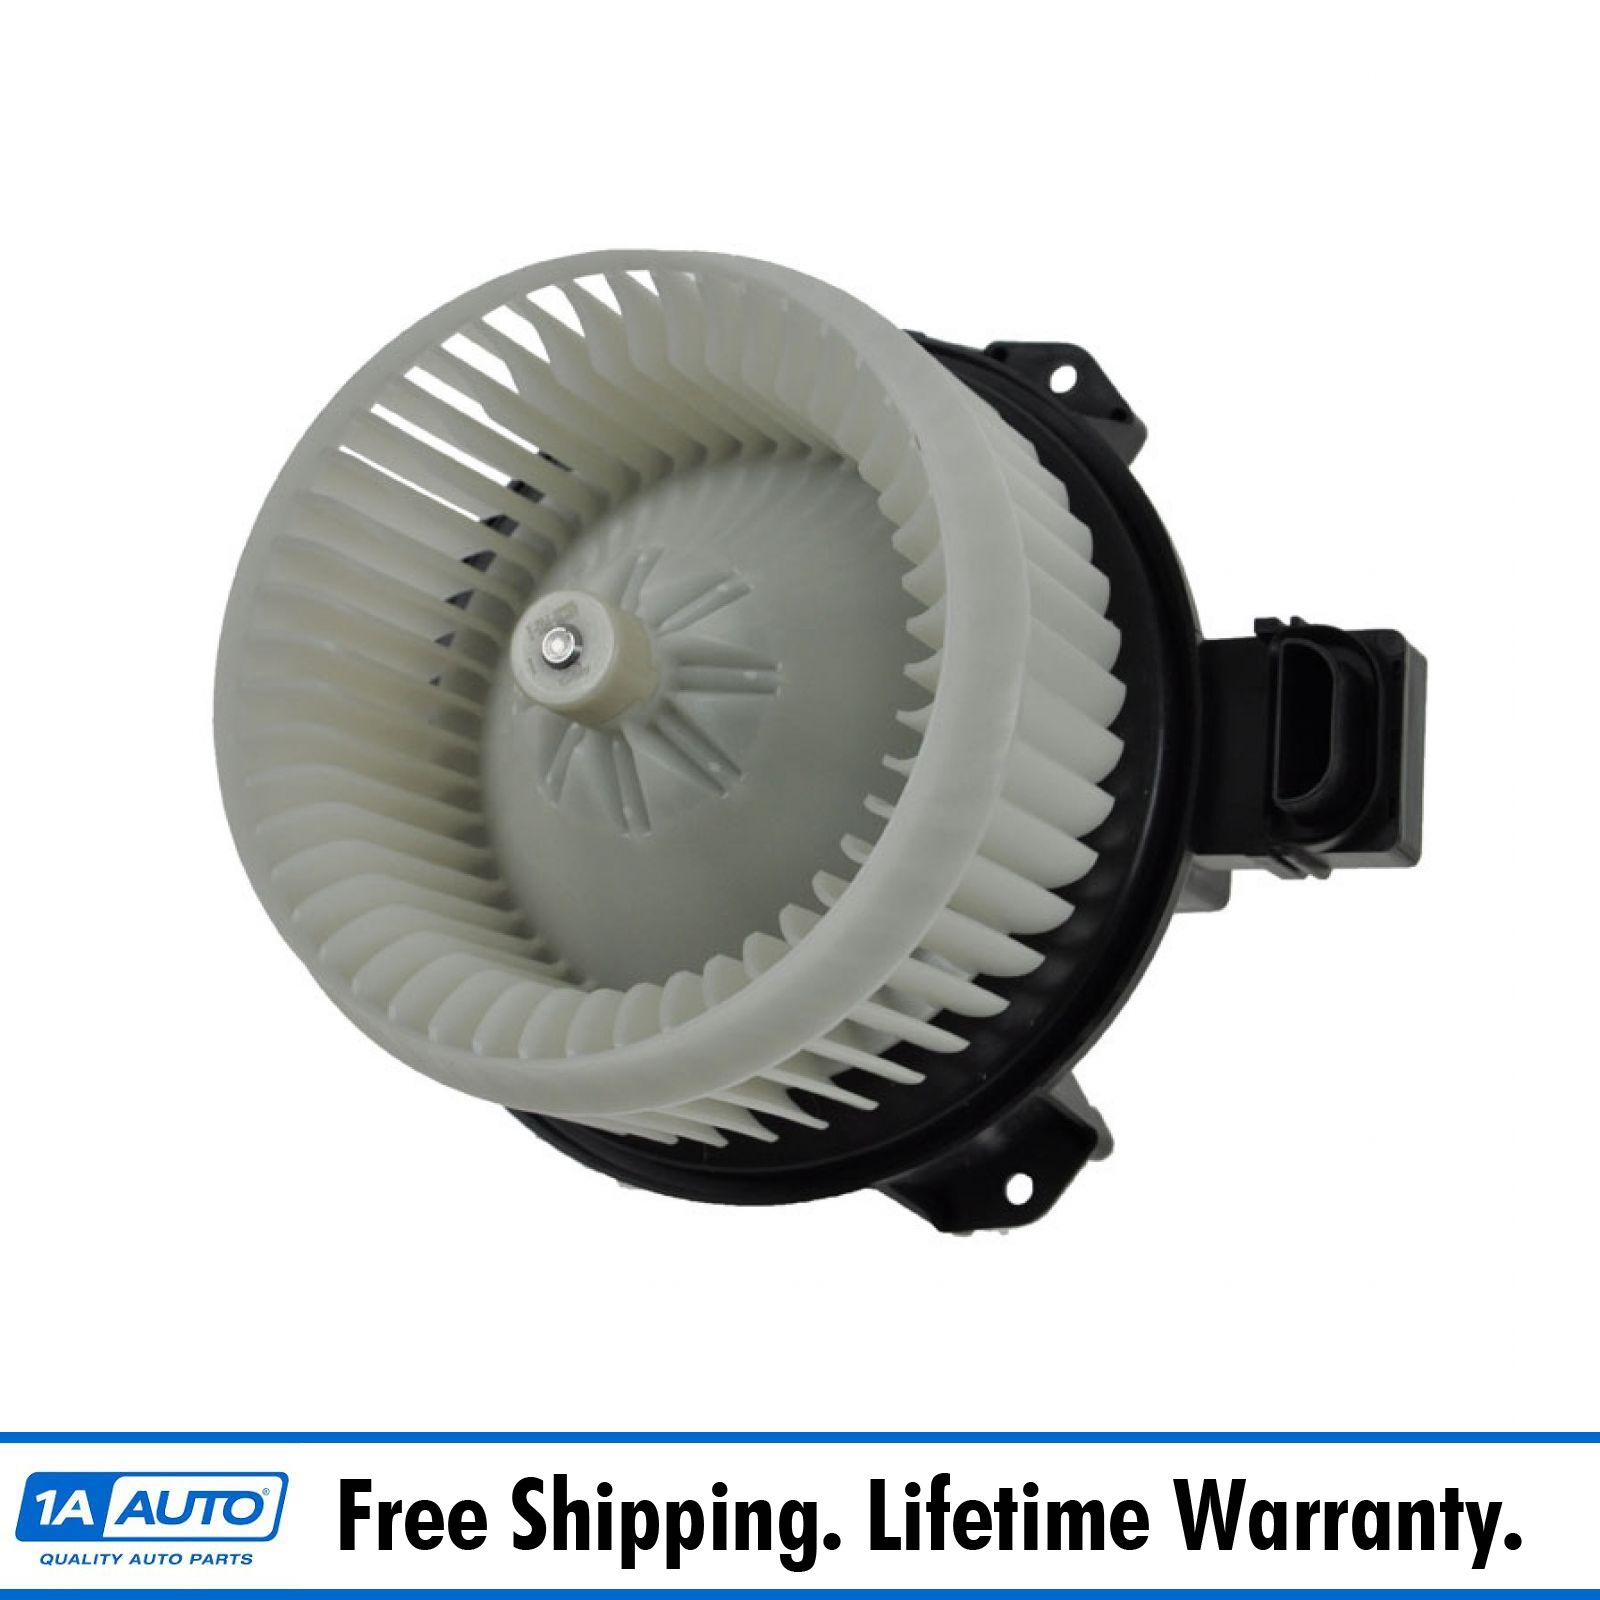 Heater blower motor w fan cage for toyota corolla matrix for Heater blower motor replacement